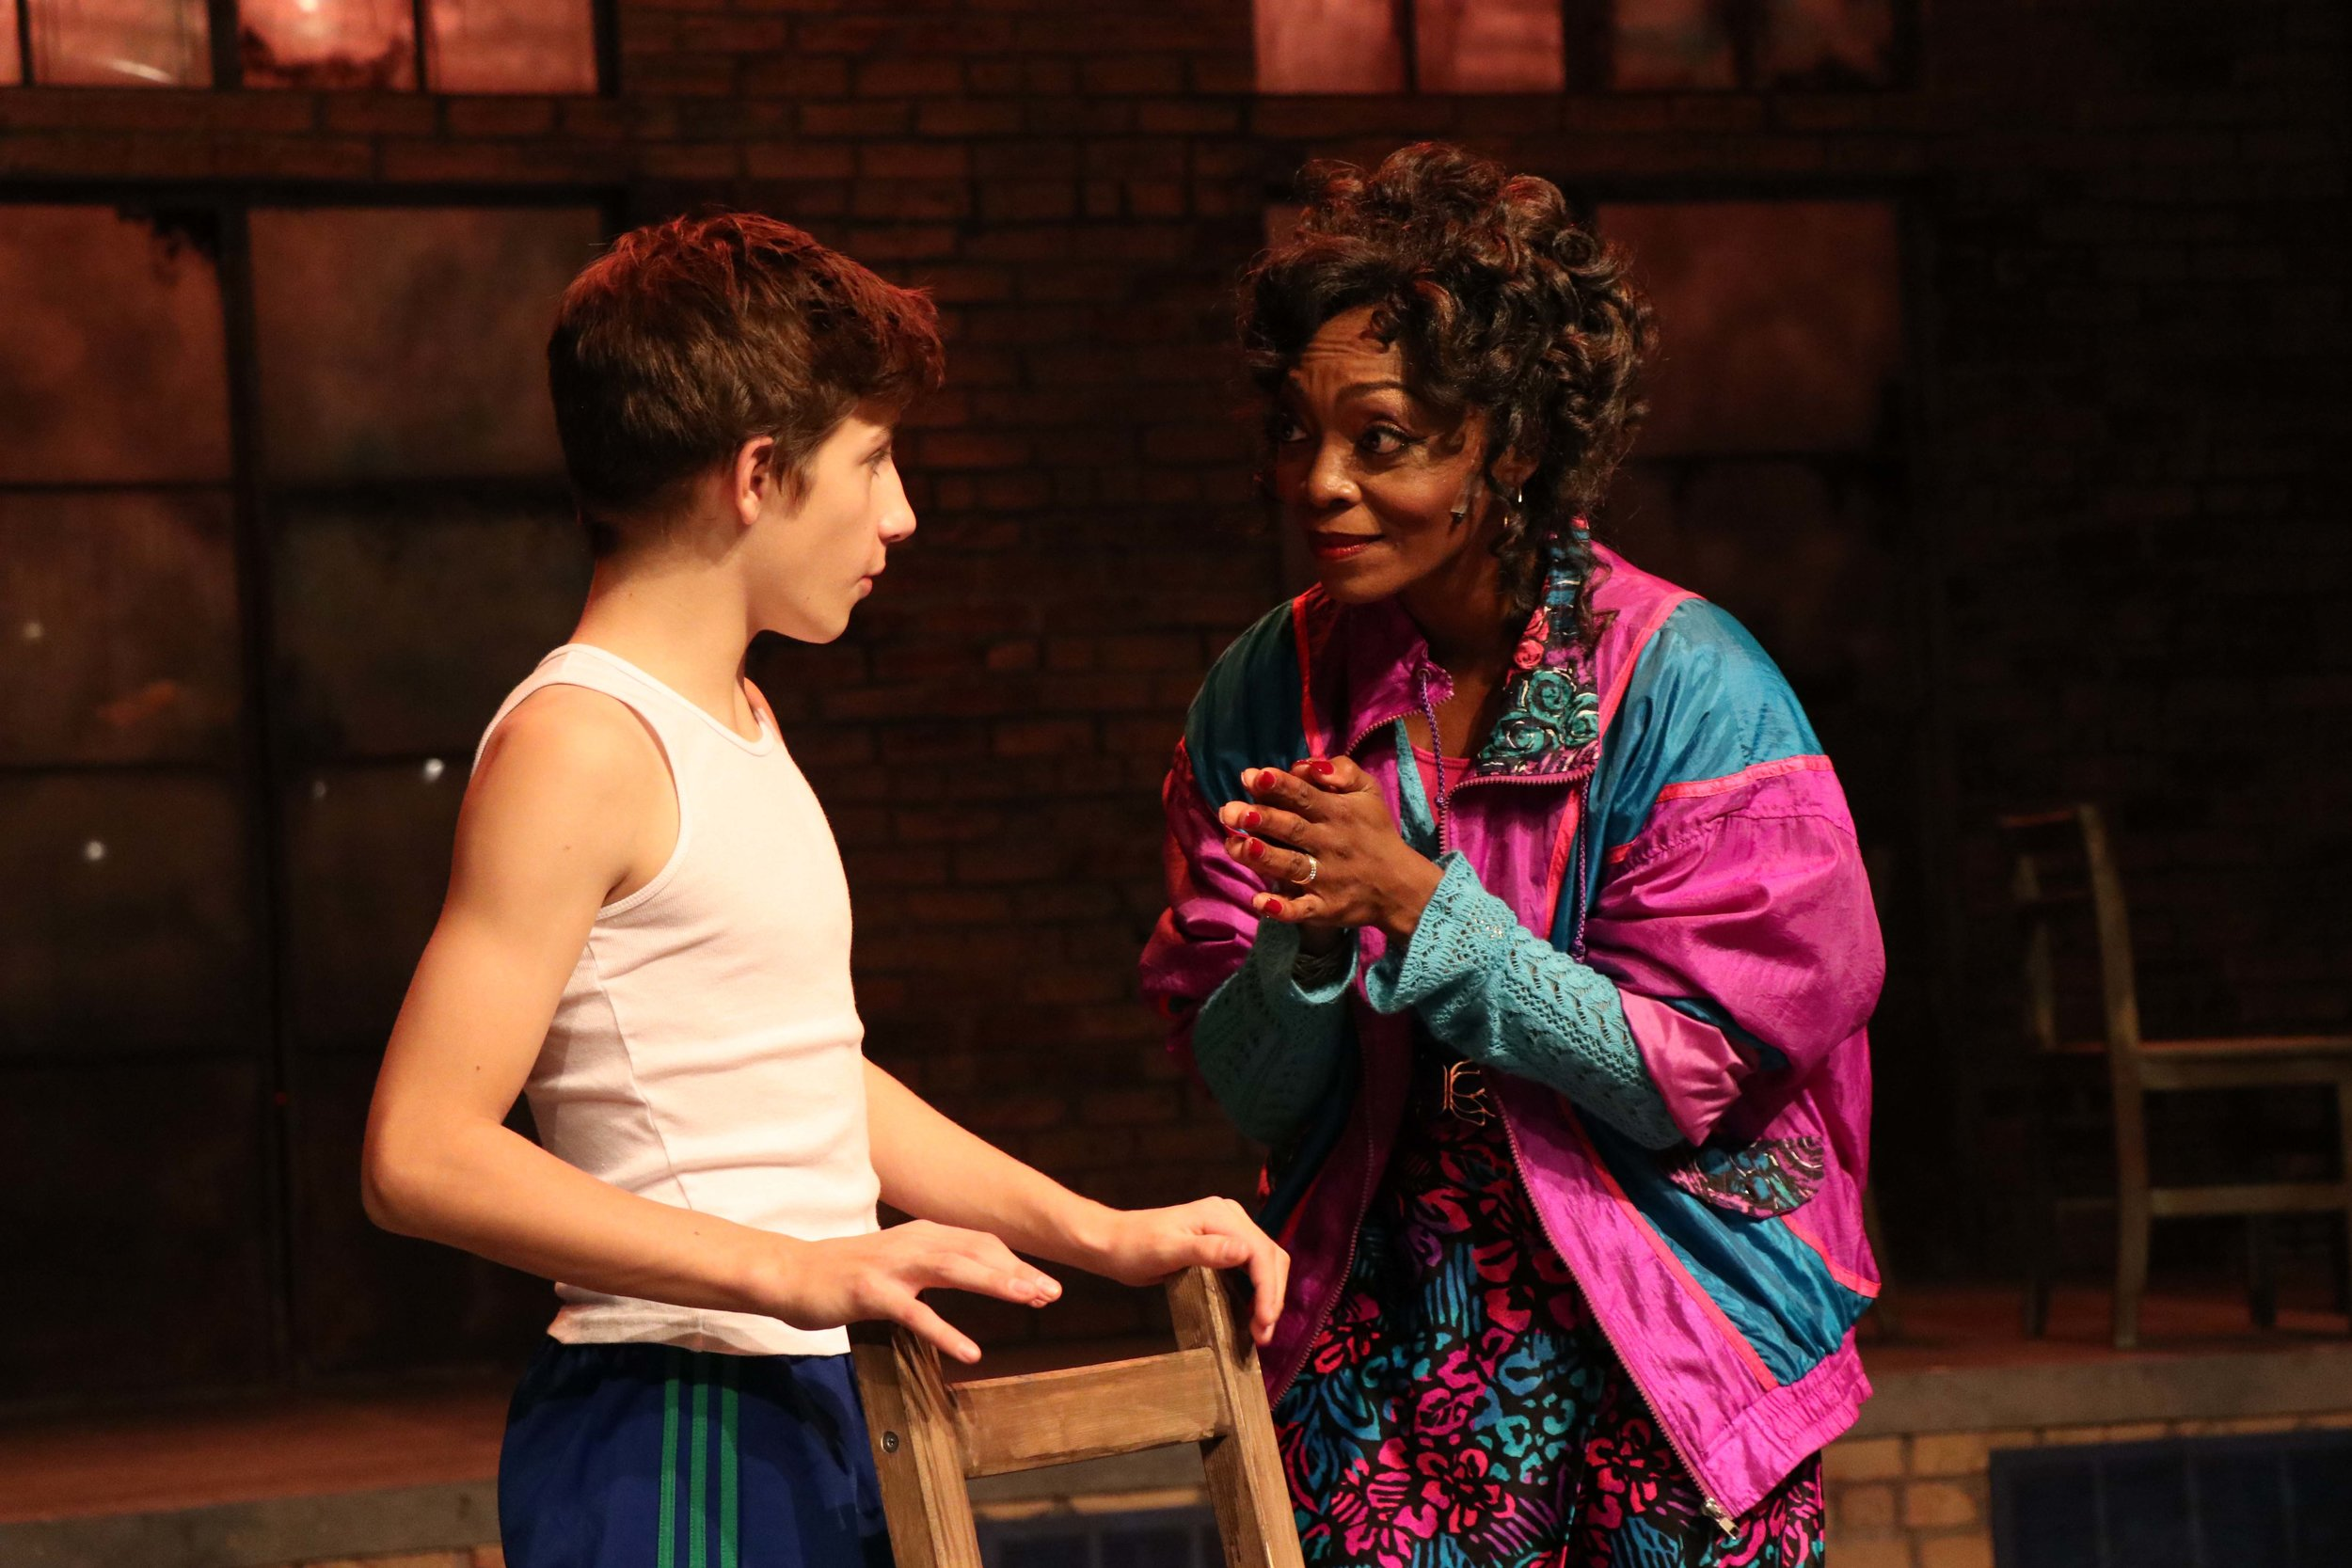 """Lincoln Seymour as """"Billy Elliot"""" and Shanésia Davis as """"Mrs. Wilkinson"""" in Porchlight Music Theatre's """"Billy Elliot the Musical."""" Photo by Austin Packard"""